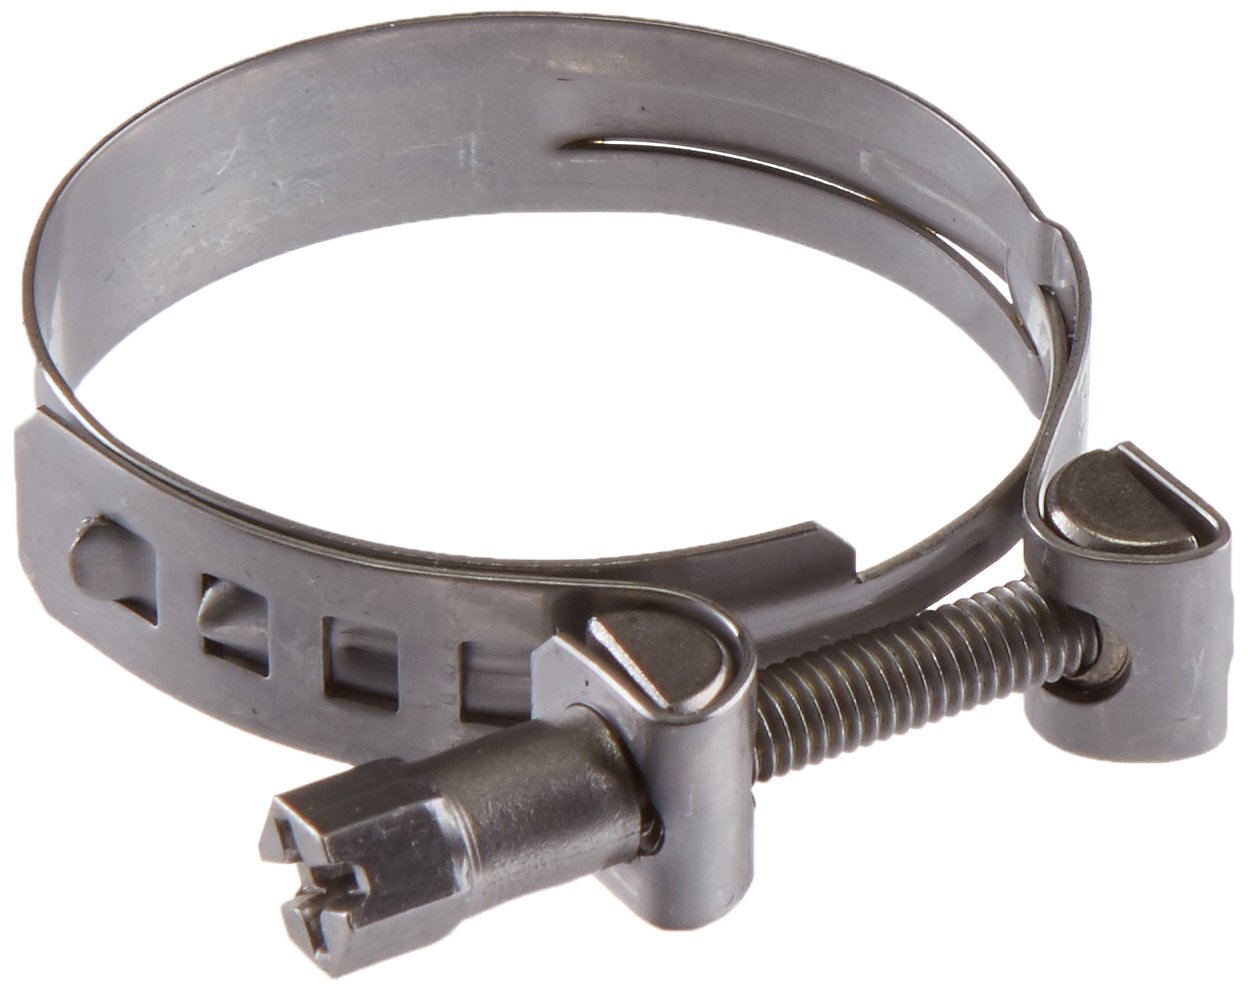 9 mm Pack of 10 - 28 mm Closed 17800122-10 Bolted Open Oetiker 17800122 Stainless Steel Stepless Hose Clamp Band Width Clamp ID Range 22 mm